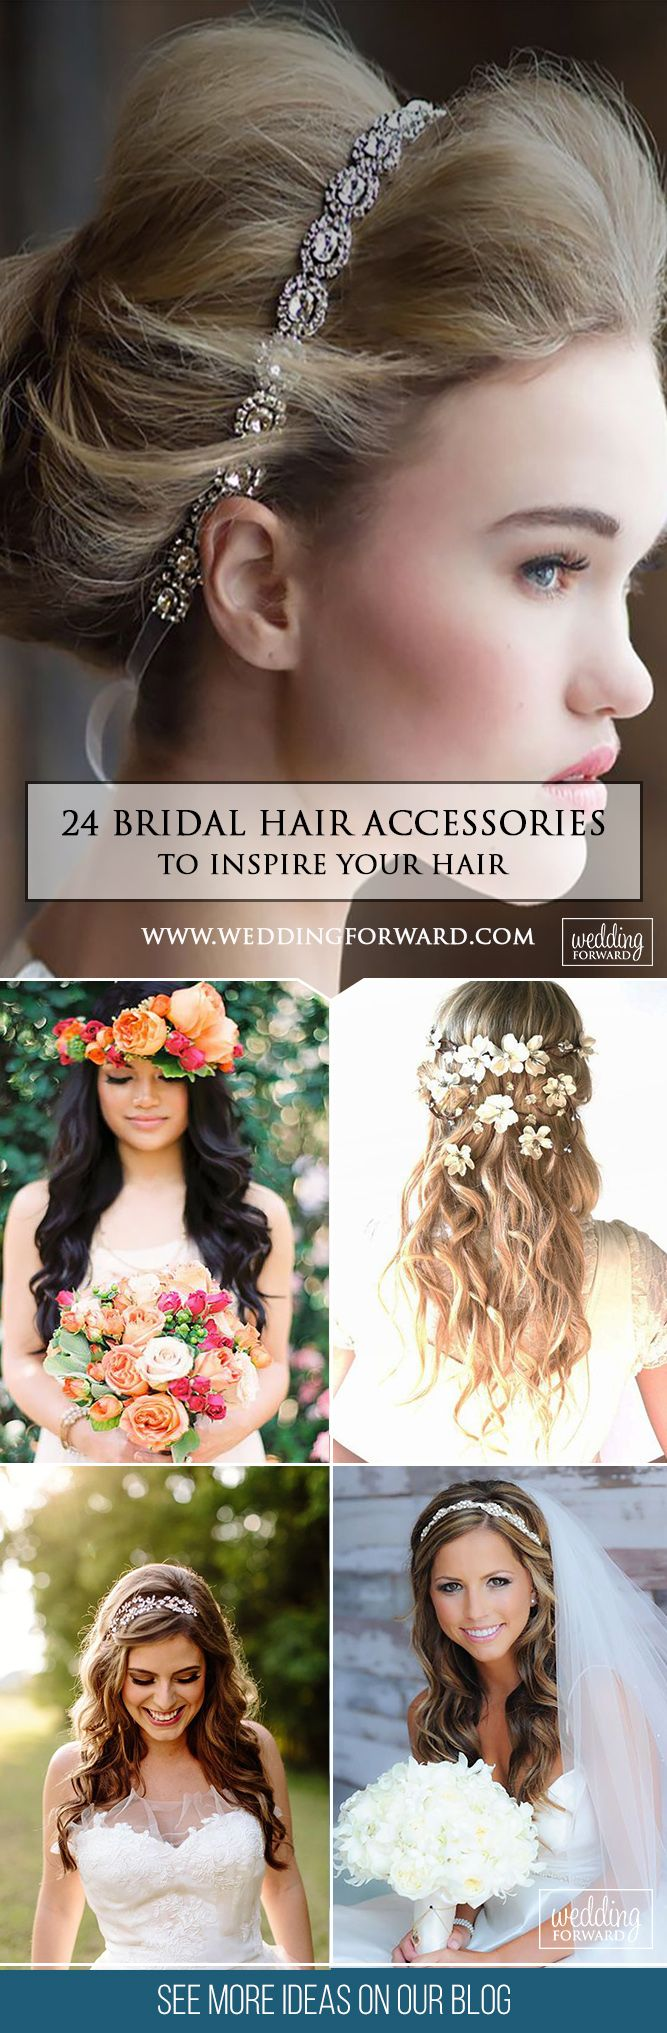 24 Bridal Hair Accessories To Inspire Your Hairstyle ❤Hair accessories let you...